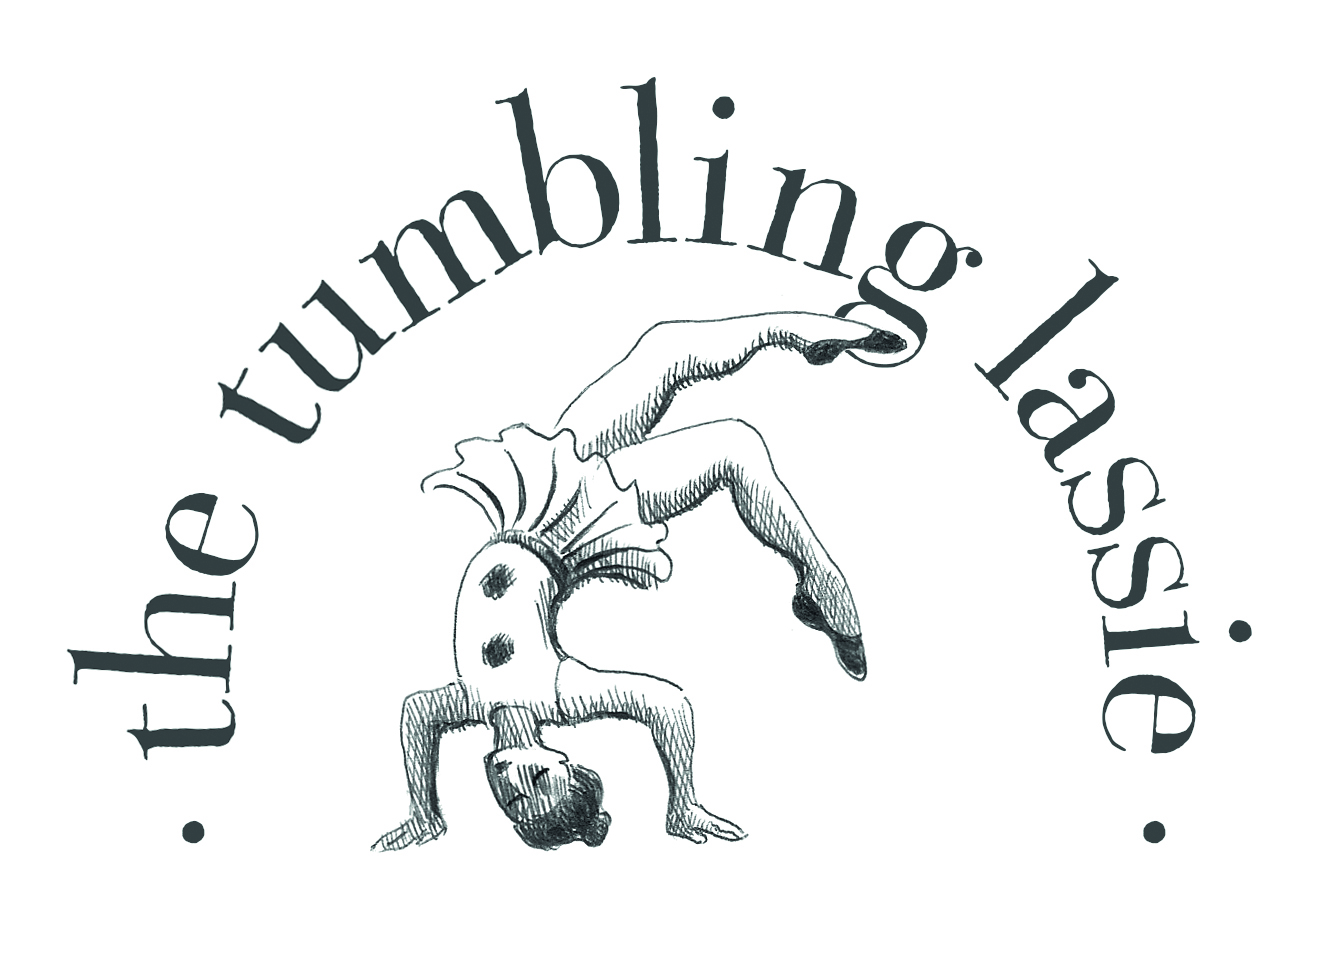 The Tumbling Lassie Committee